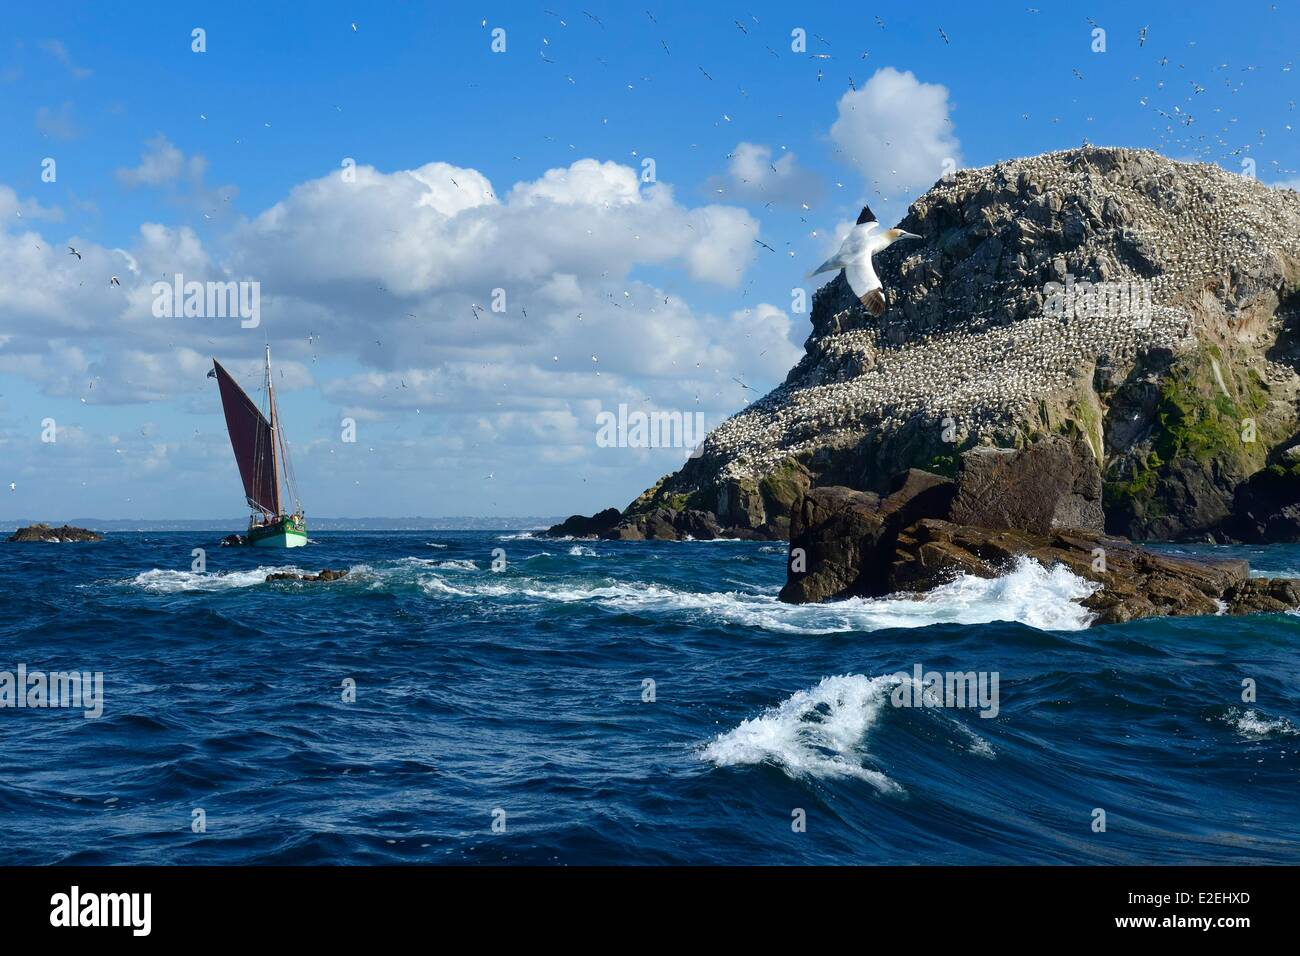 France Cotes d'Armor Perros Guirec Sept Iles Archipelago and bird sanctuary the traditional sailboat Sant C'hireg - Stock Image